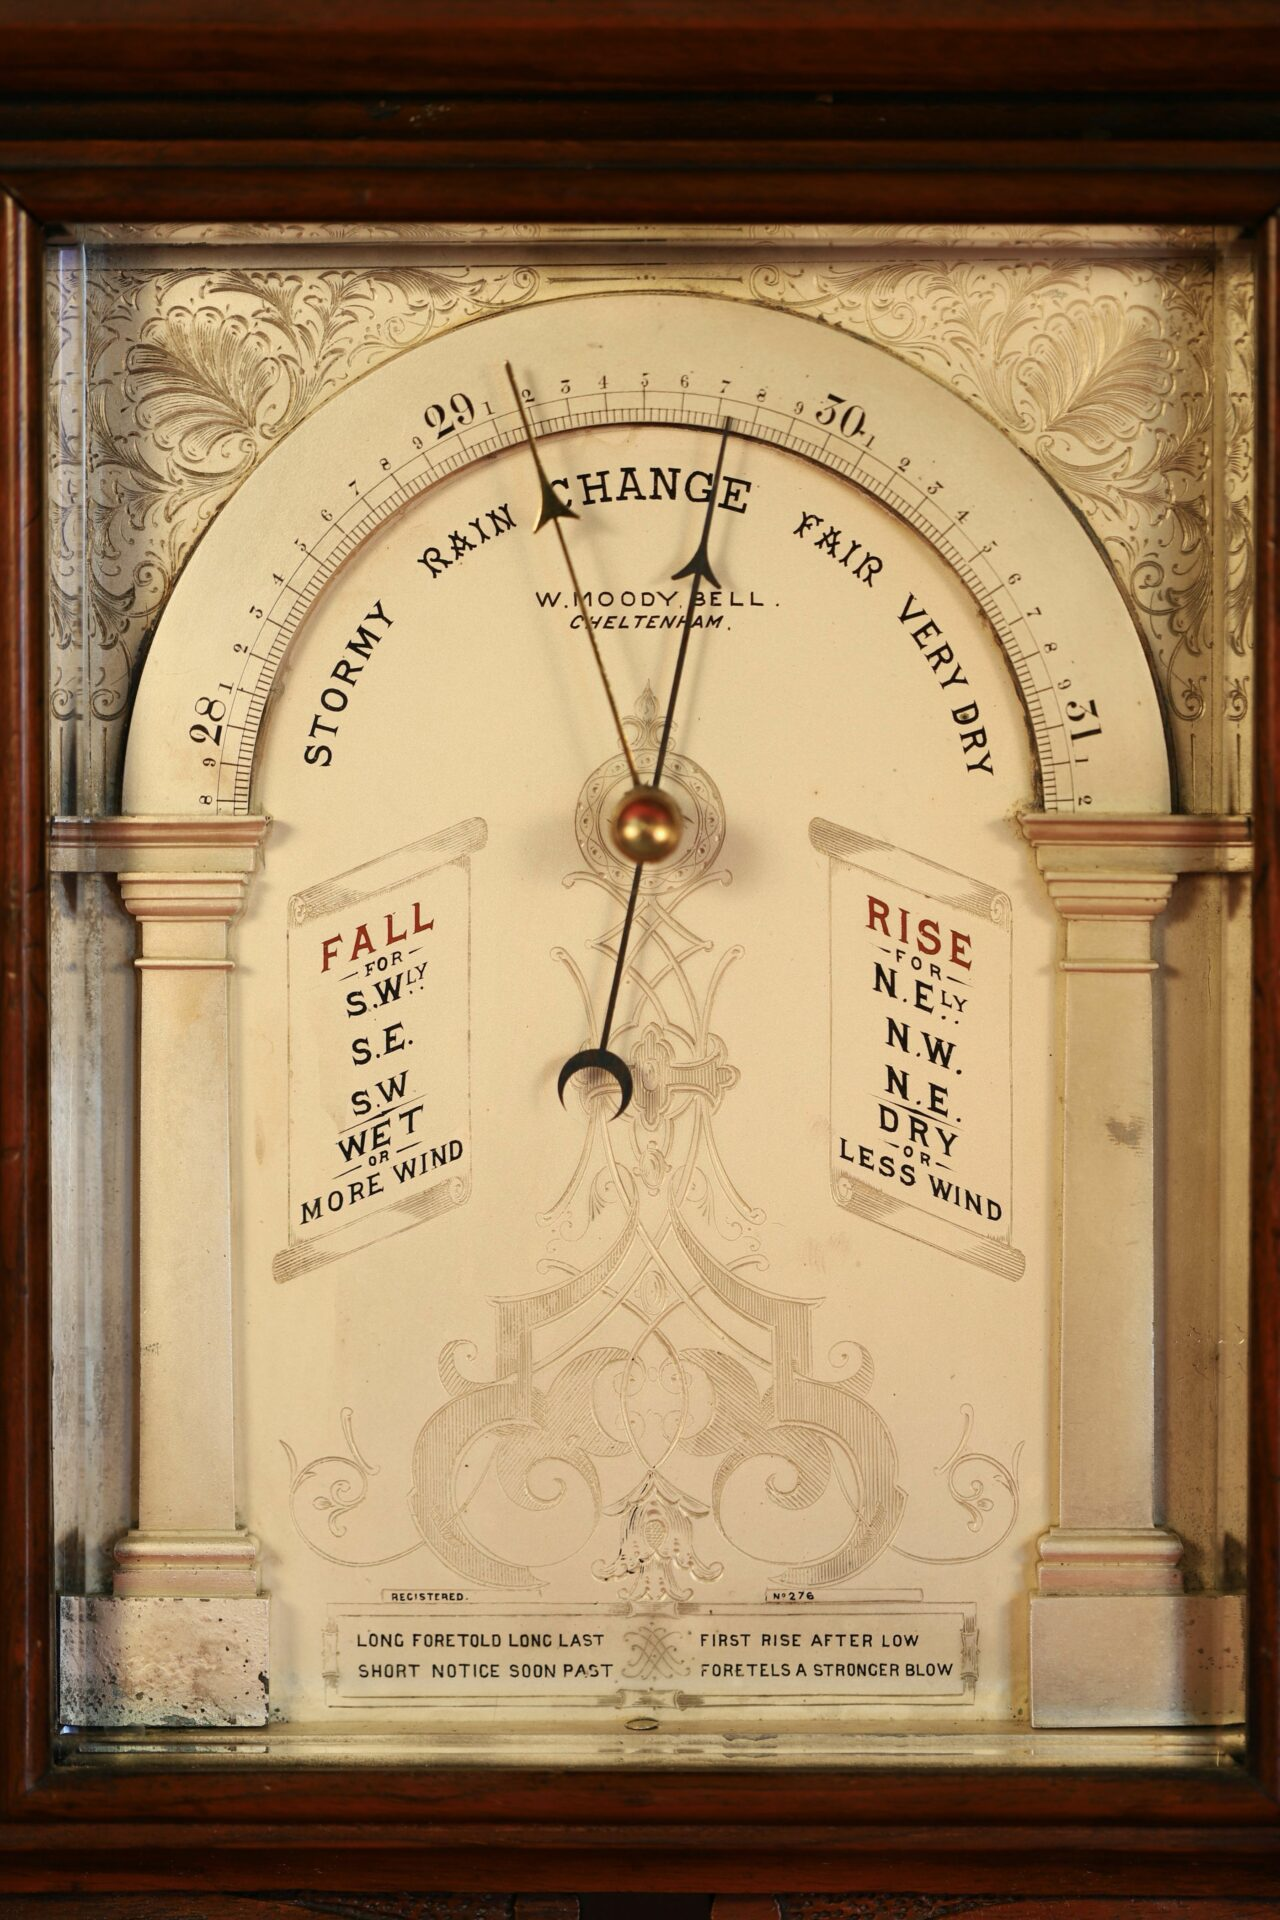 Image of dial of Moody Bell Table Barometer c1880 showing decoration and wording